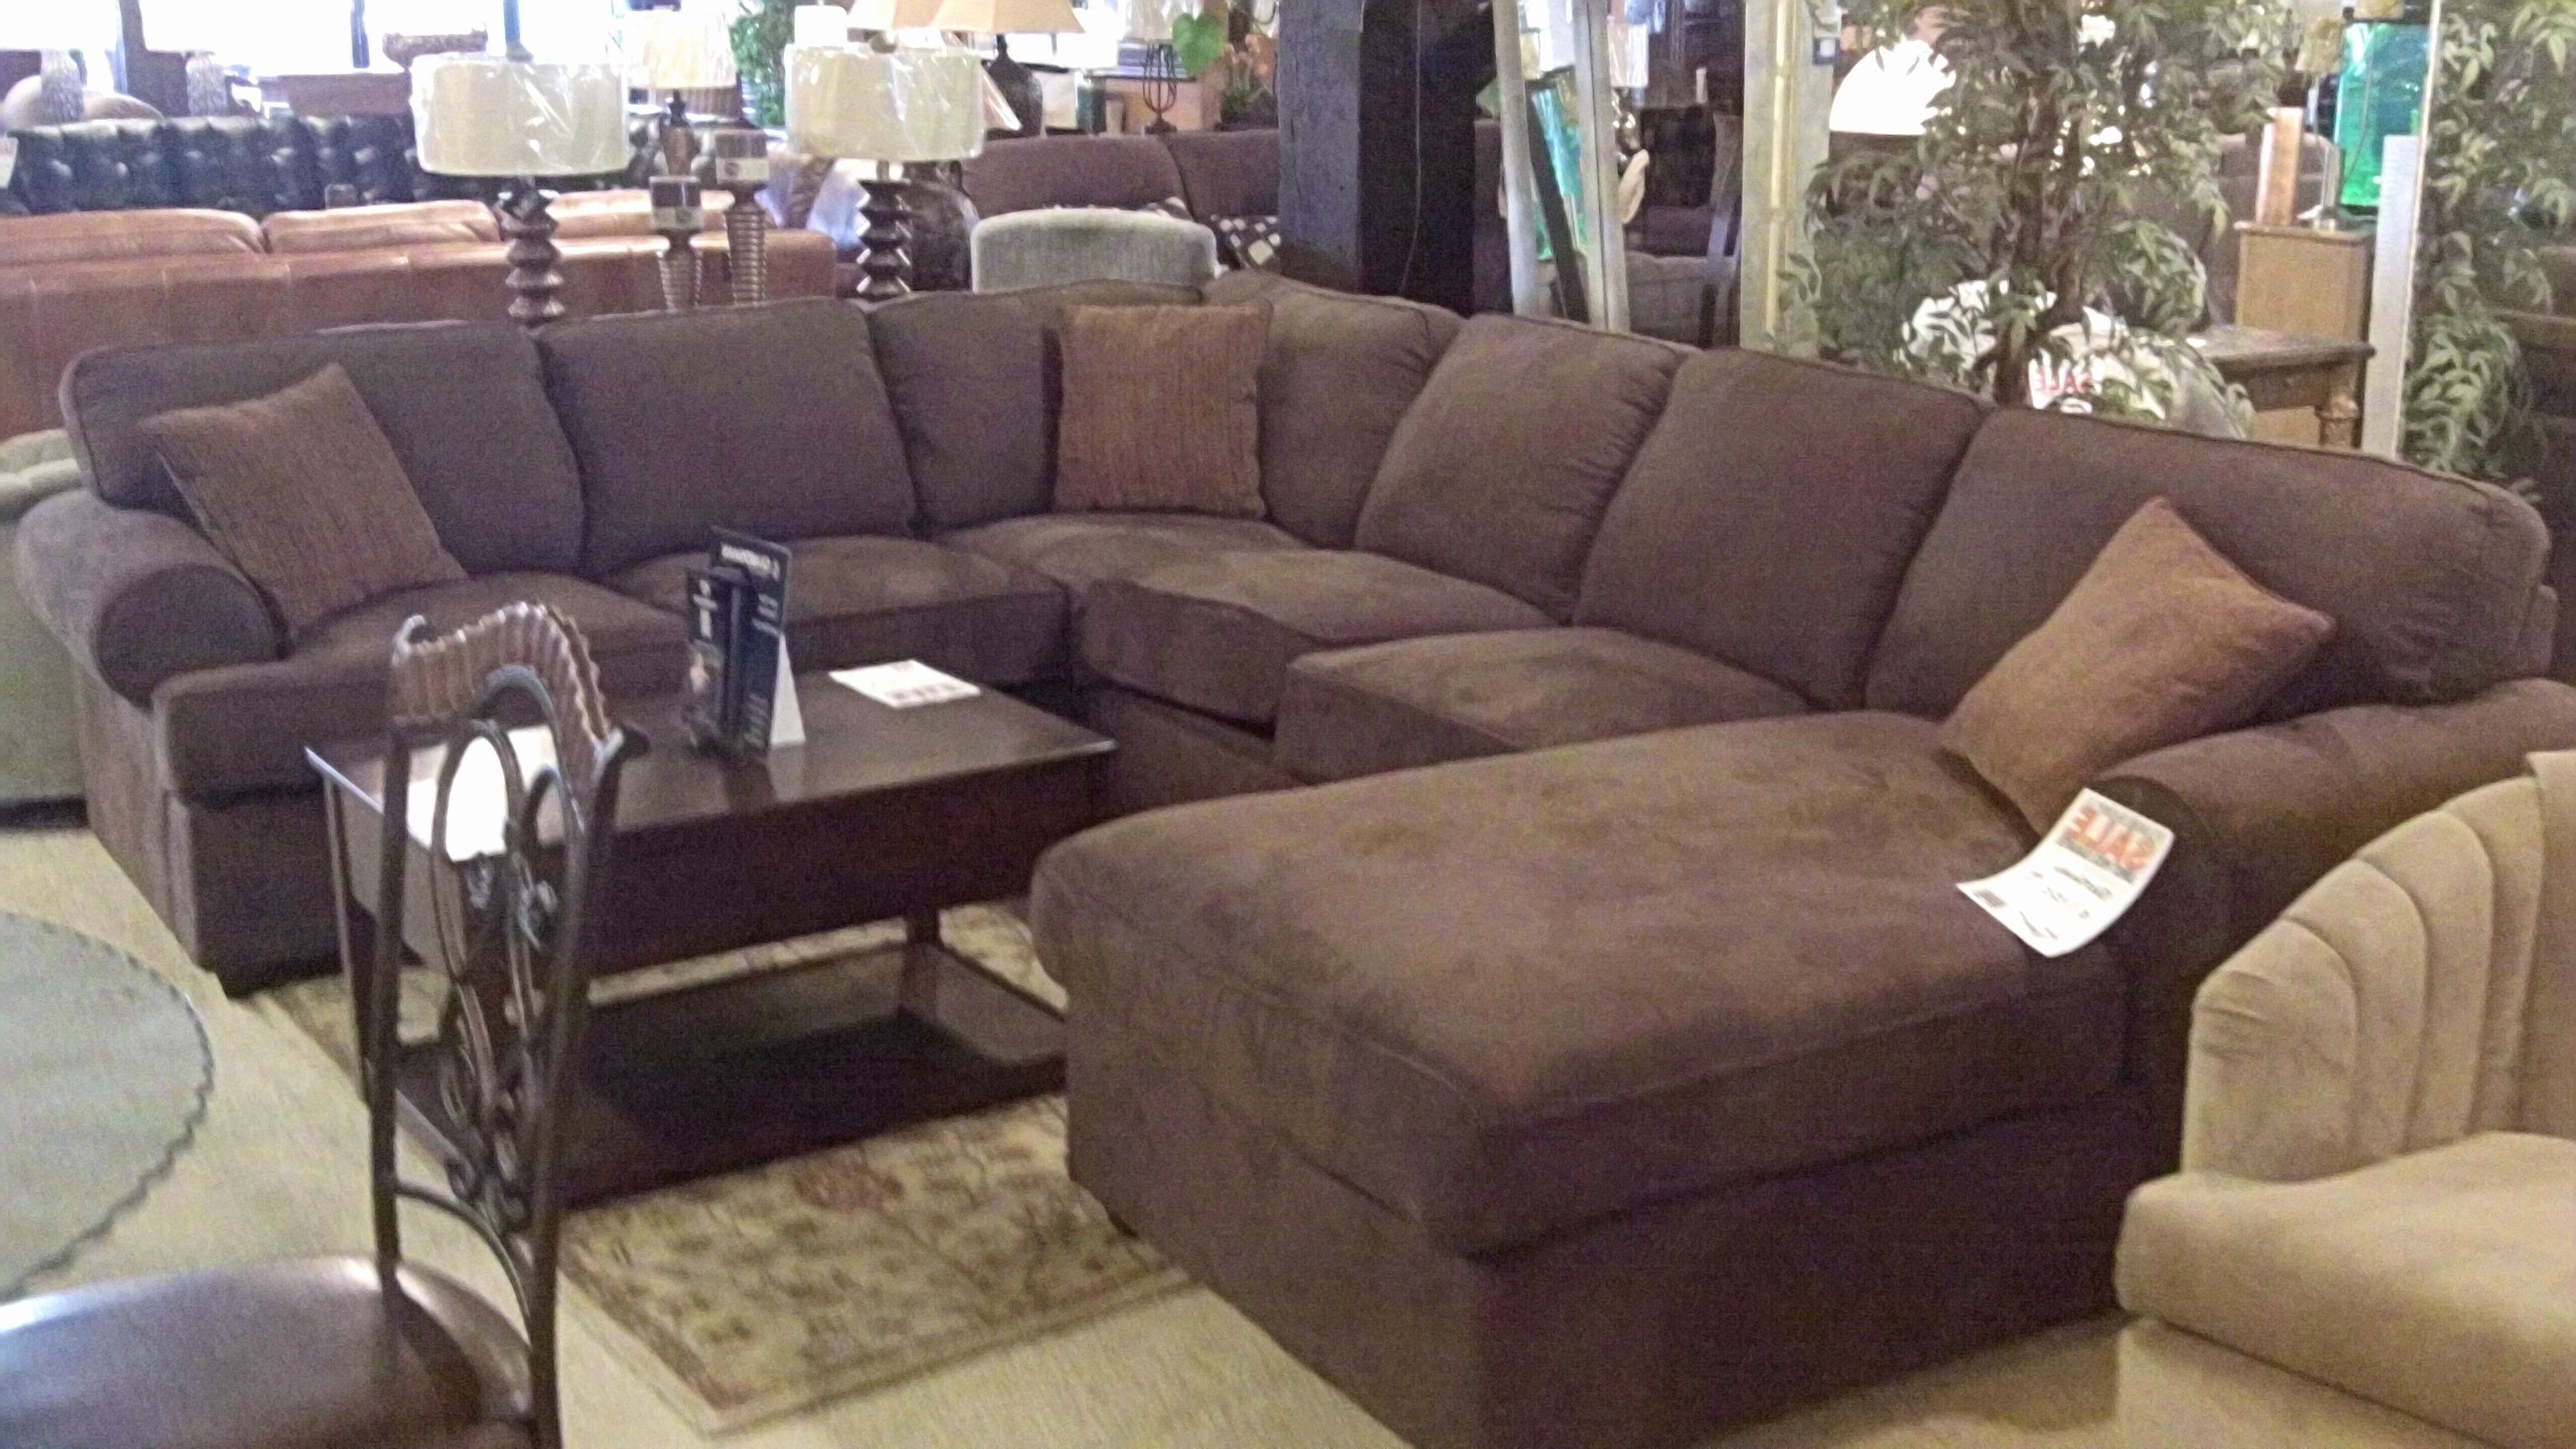 Down Filled Sofas For 2017 Luxury Down Filled Sectional Sofa 2018 – Couches And Sofas Ideas (View 3 of 15)